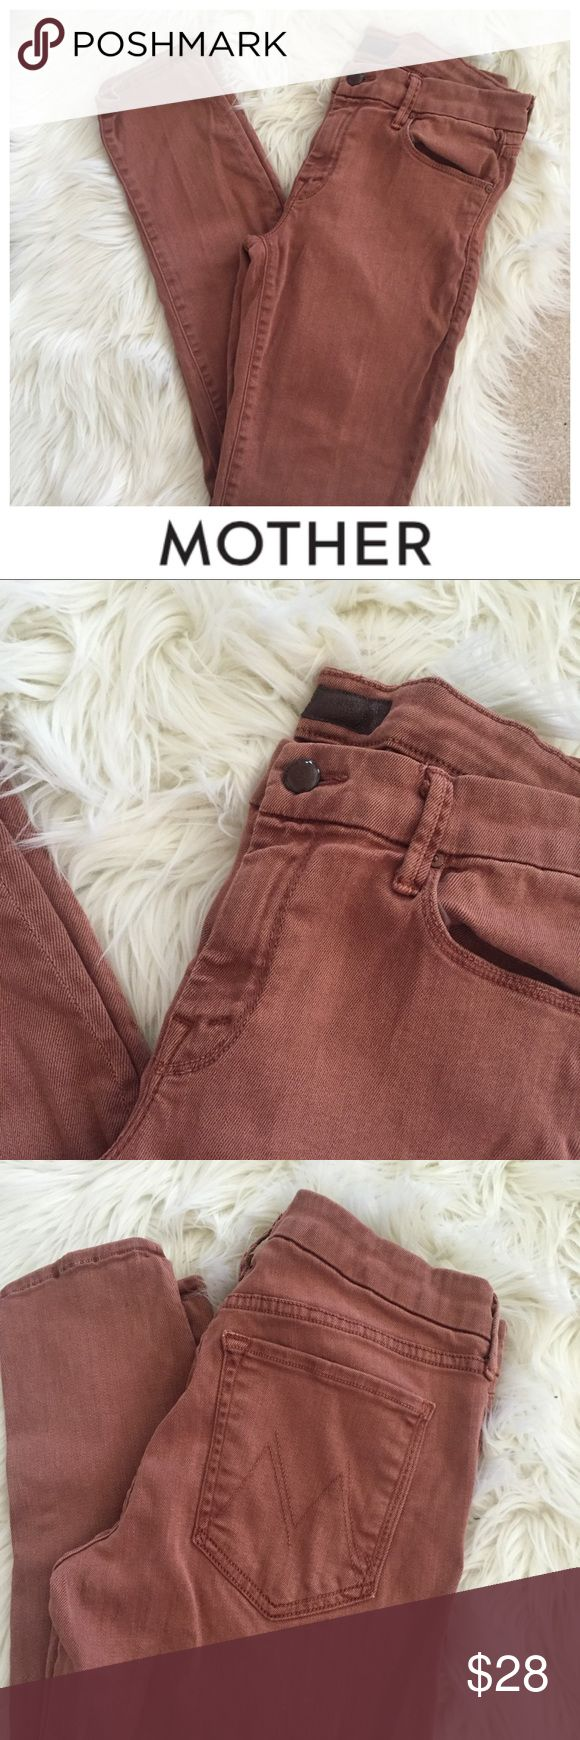 MOTHER Skinny Color Jeans Adorable MOTHER The Looker Pop! skinny jeans in rust / burnt orange. So cute. Size 30. Sizing chart taken from Mother Denim's website for your convenience, but please verify yourself as well. NOT Anthropologie -- just for visibility. Hope you enjoy! 🎈💐 Anthropologie Jeans Skinny